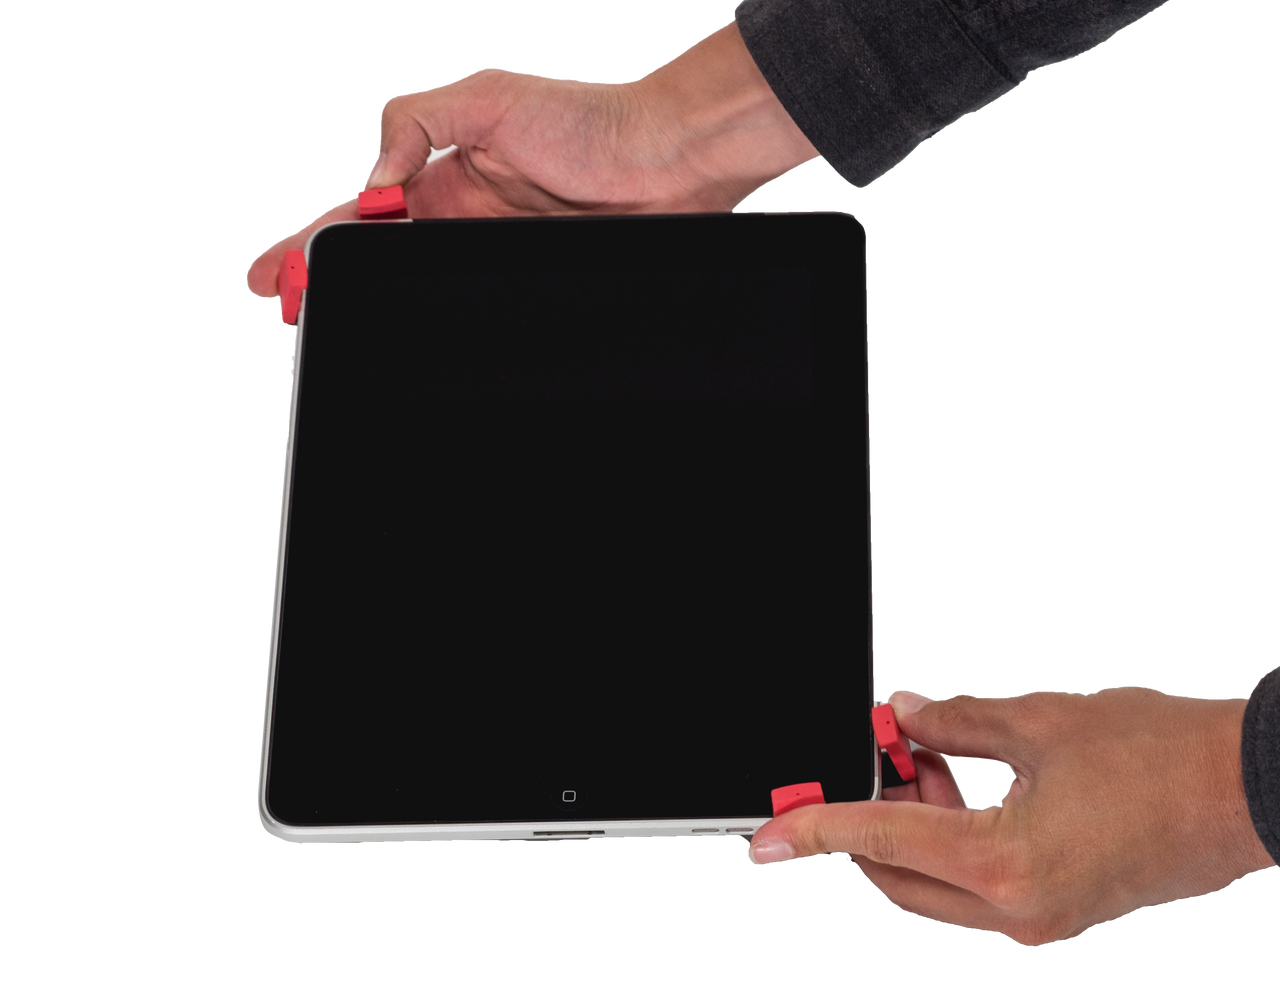 Flex Tabgrabber Tablet and iPad Cradle - with iPad